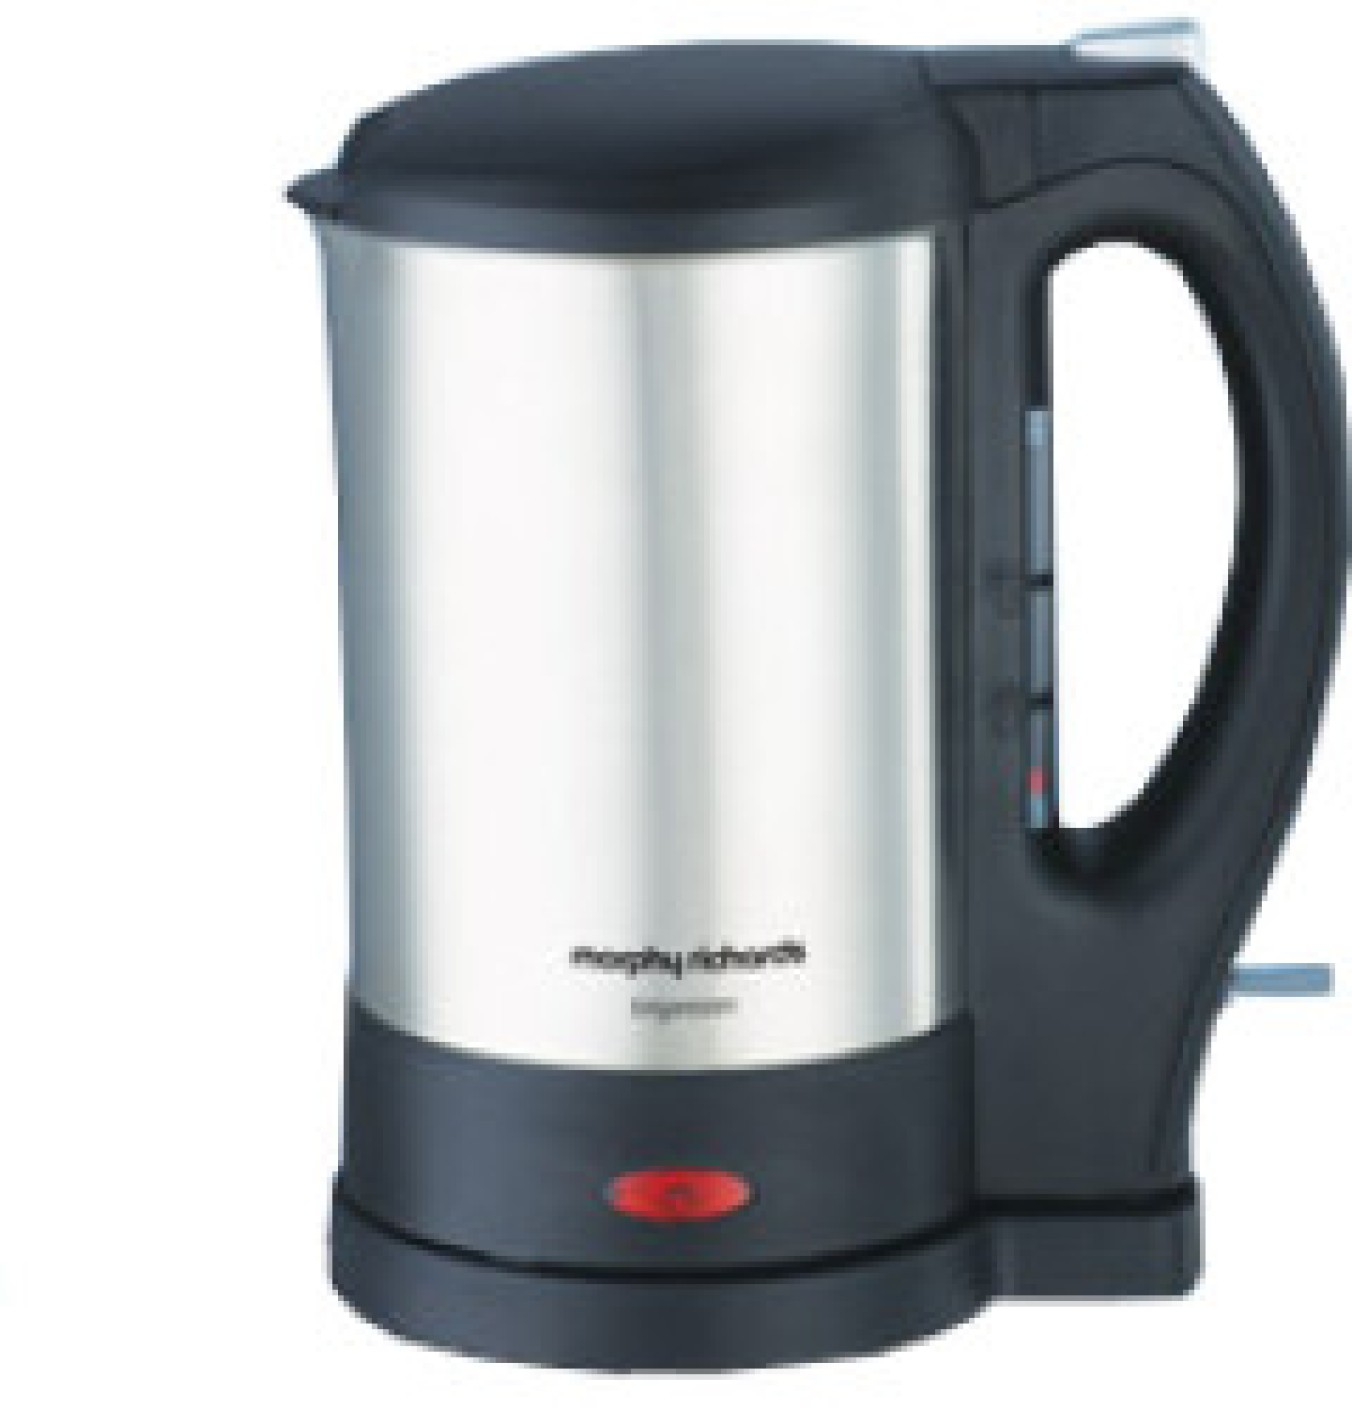 Morphy Richards India: Morphy Richards Impresso Electric Kettle Price In India